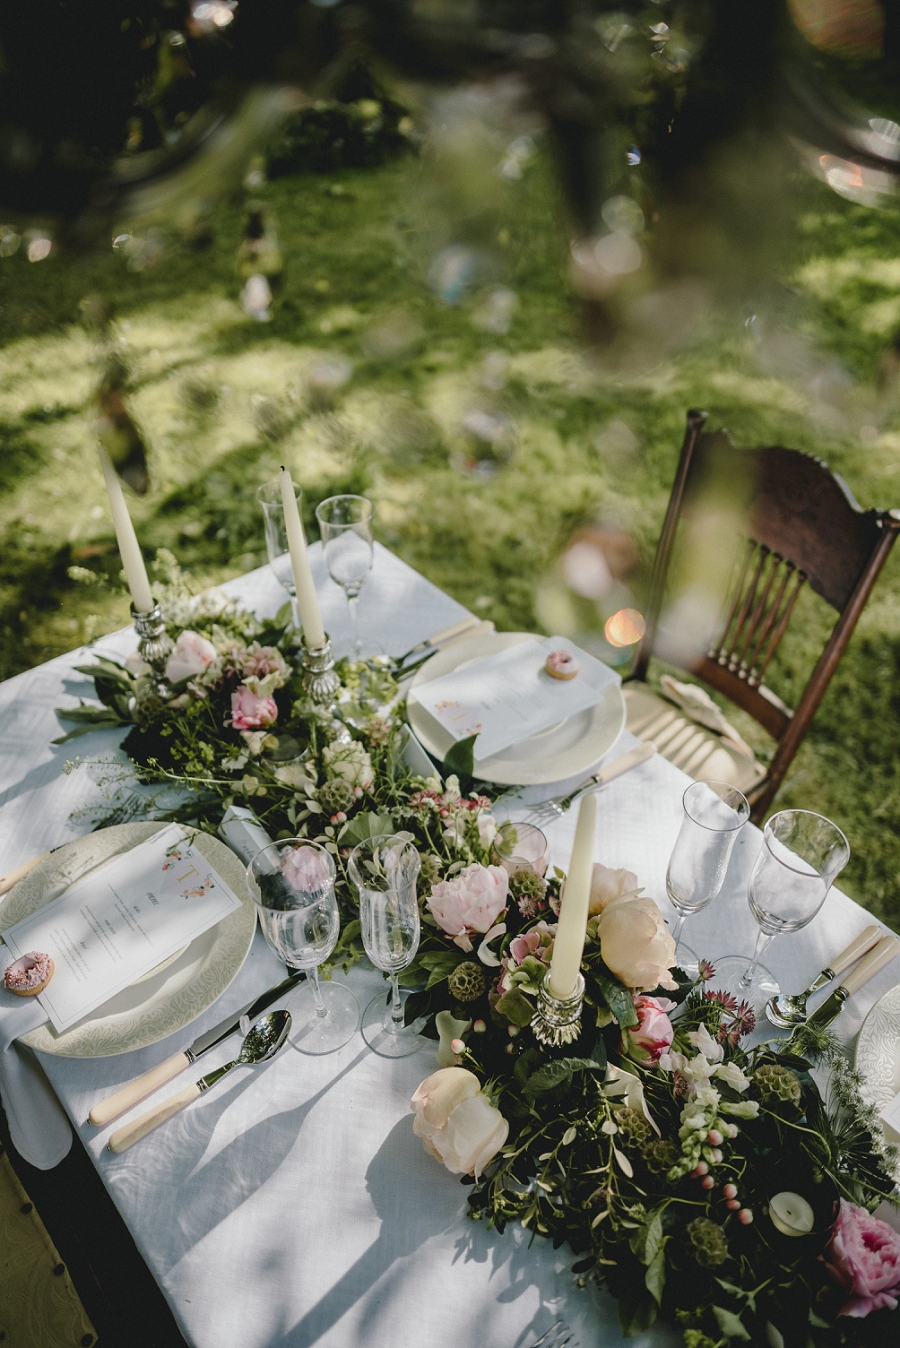 Heirloom wedding inspiration with Emily Andrews Events at Thurning Hall. Photo credit Benjamin Mathers Photography (21)